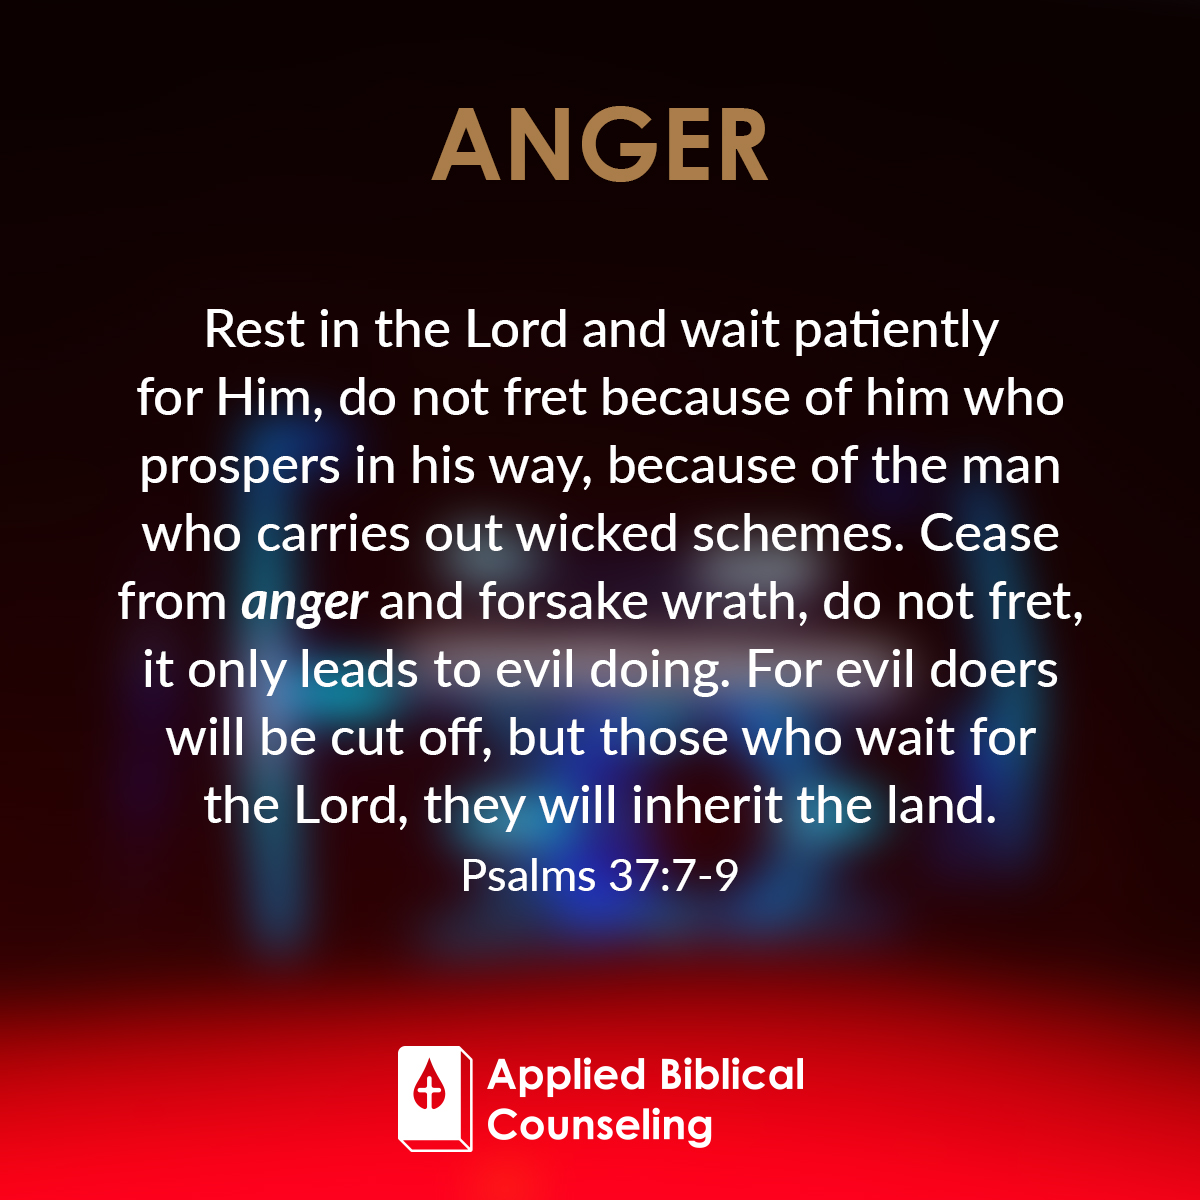 Anger Verses: Applied Biblical Counseling